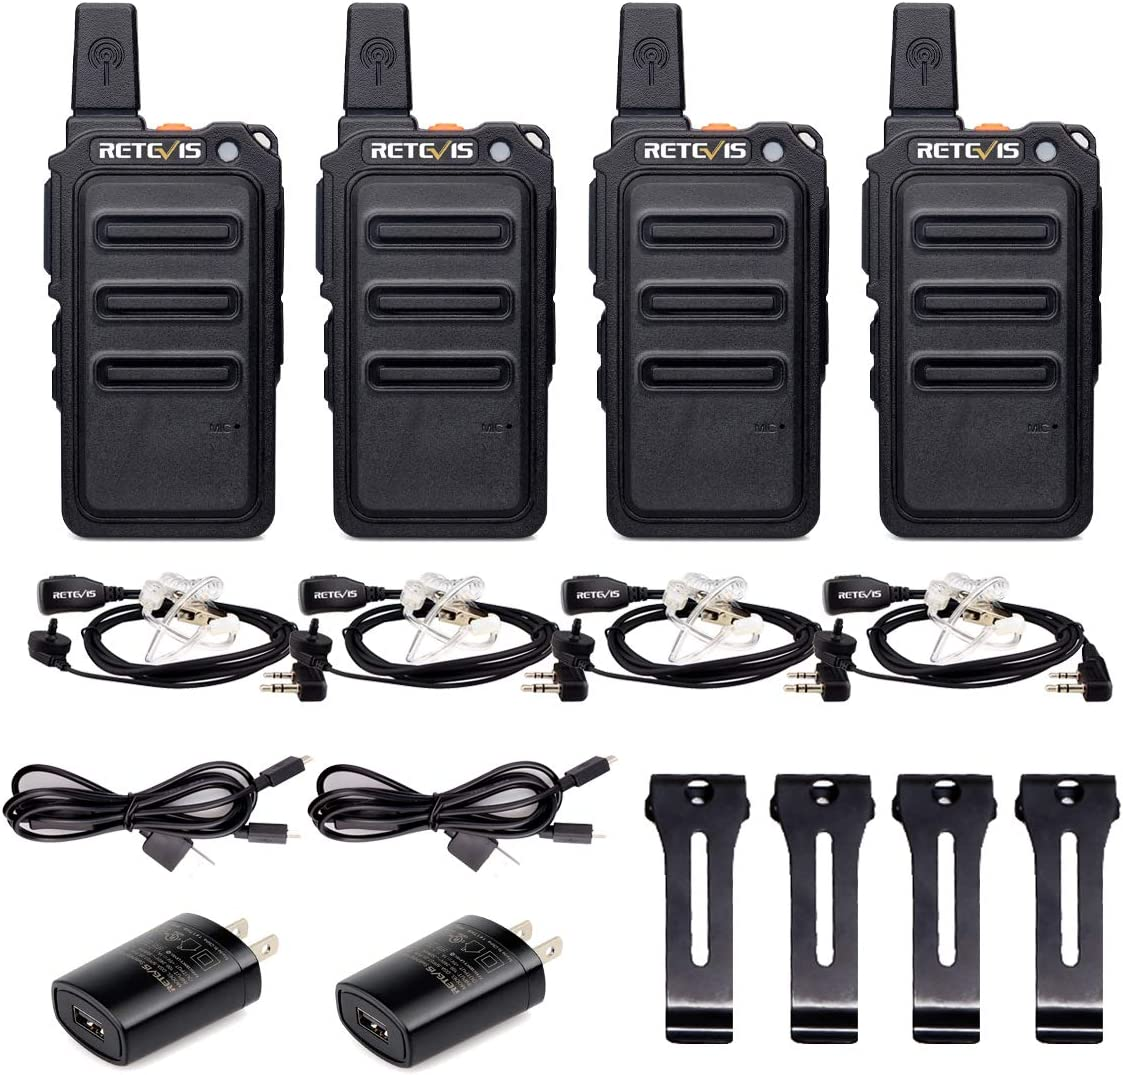 Retevis RT19 Walkie Talkies Adults,Rechargeable Long Range Two Way Radio Mini,VOX Hands Free,1300mAh Battery,Metal Clip,with Earpiece(4 Pack)